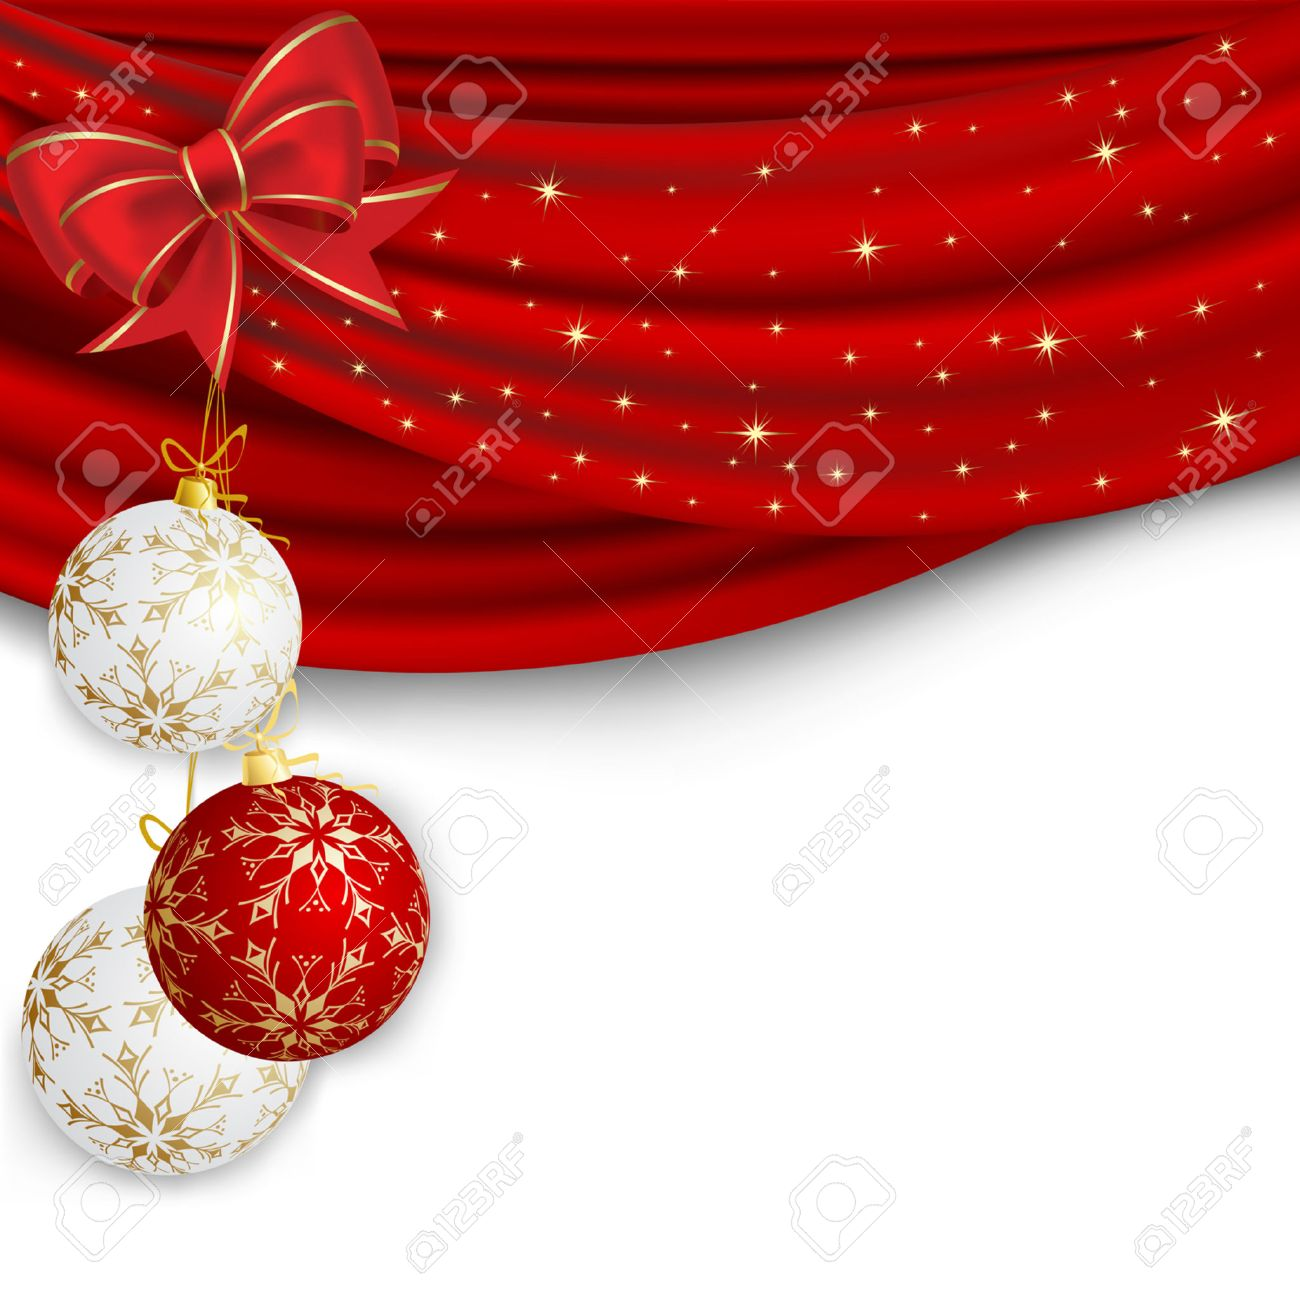 Christmas background with red curtain and ball Stock Vector - 8105519